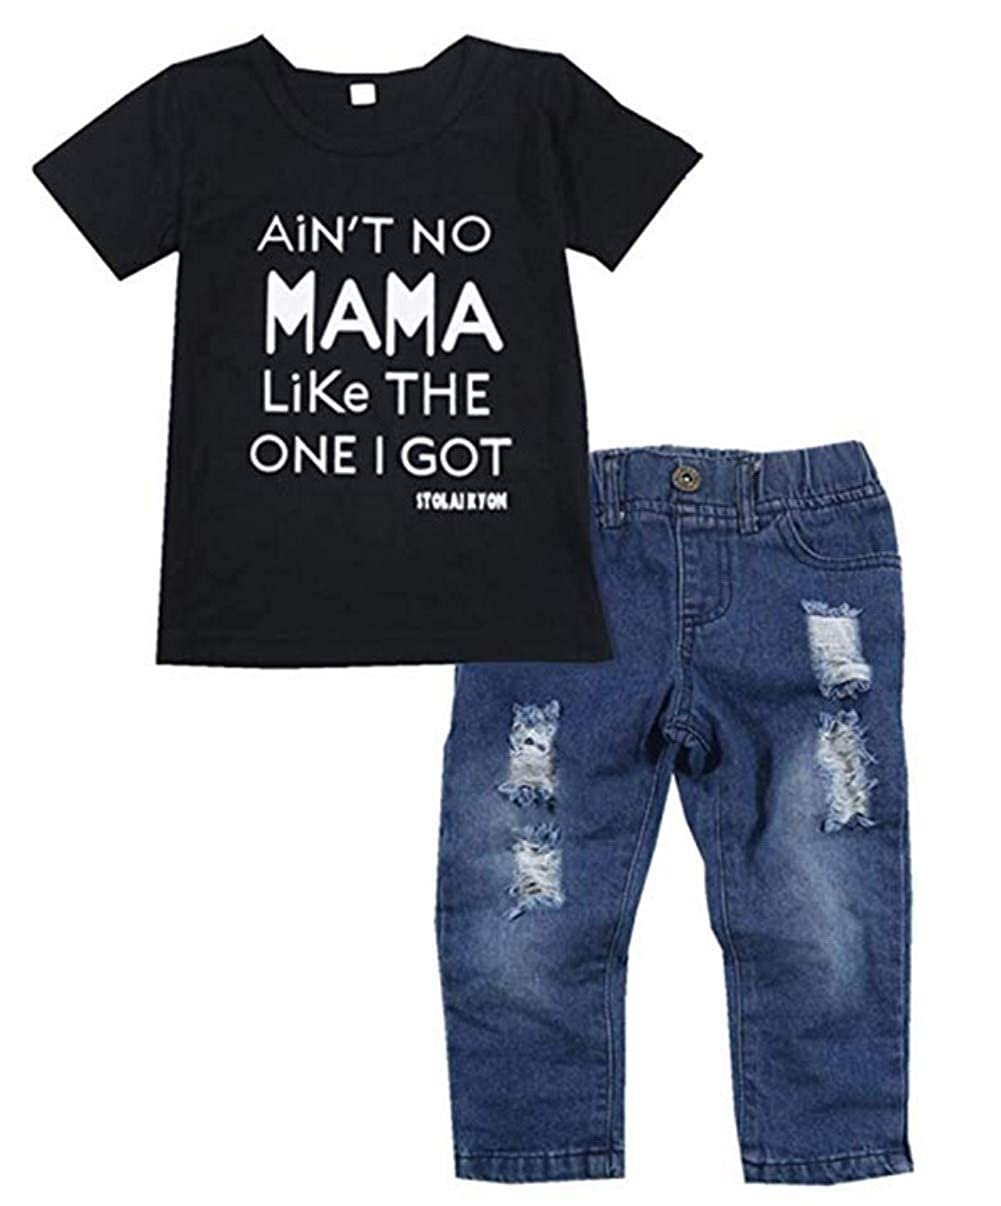 Kids Baby Boy Ain't No Mama Like The One I Got Letters Print Short Sleeve T-Shirt +Denim Pants Outfits Set MNLYBABY